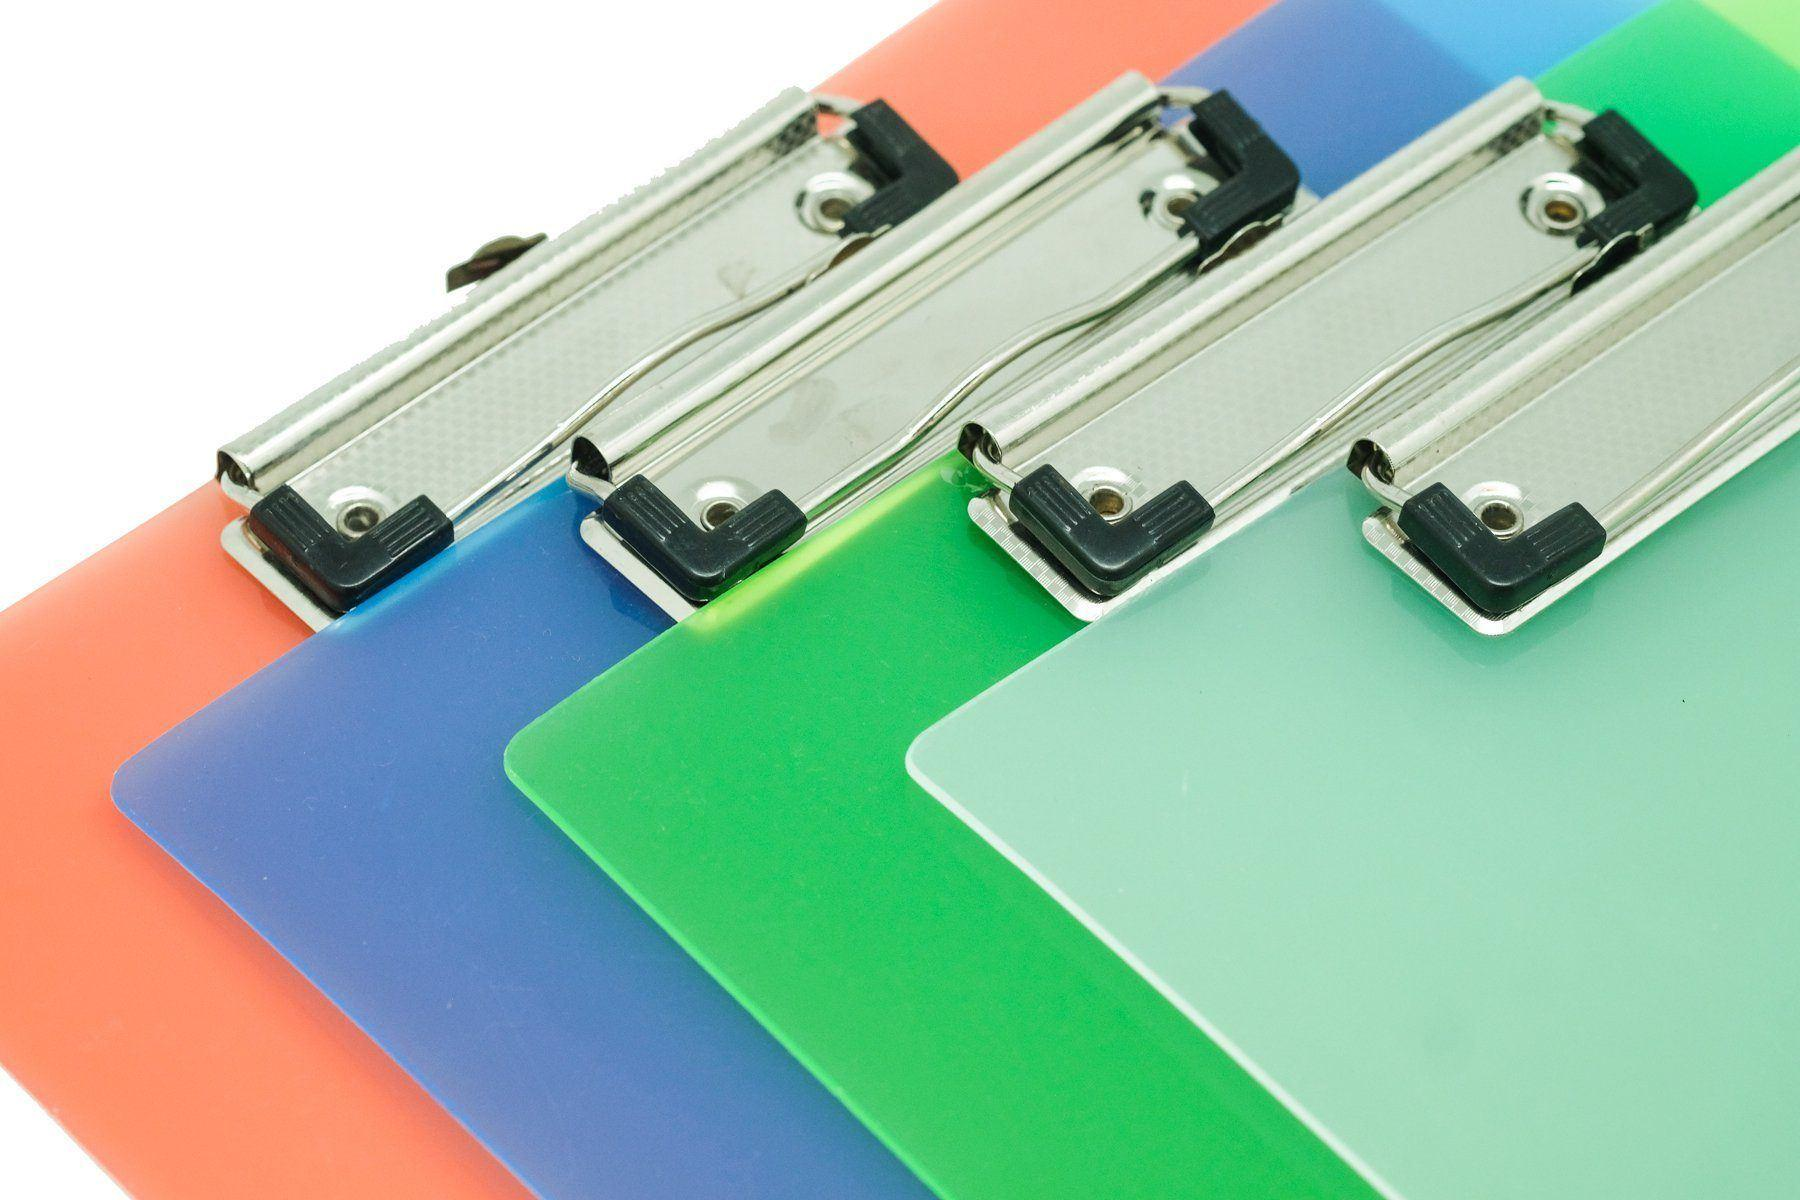 Translucent PP Clipboard,  - Everyday Stationery,Stationery,Corporate Gift Ideas,Printable/Customizable - One Dollar Only